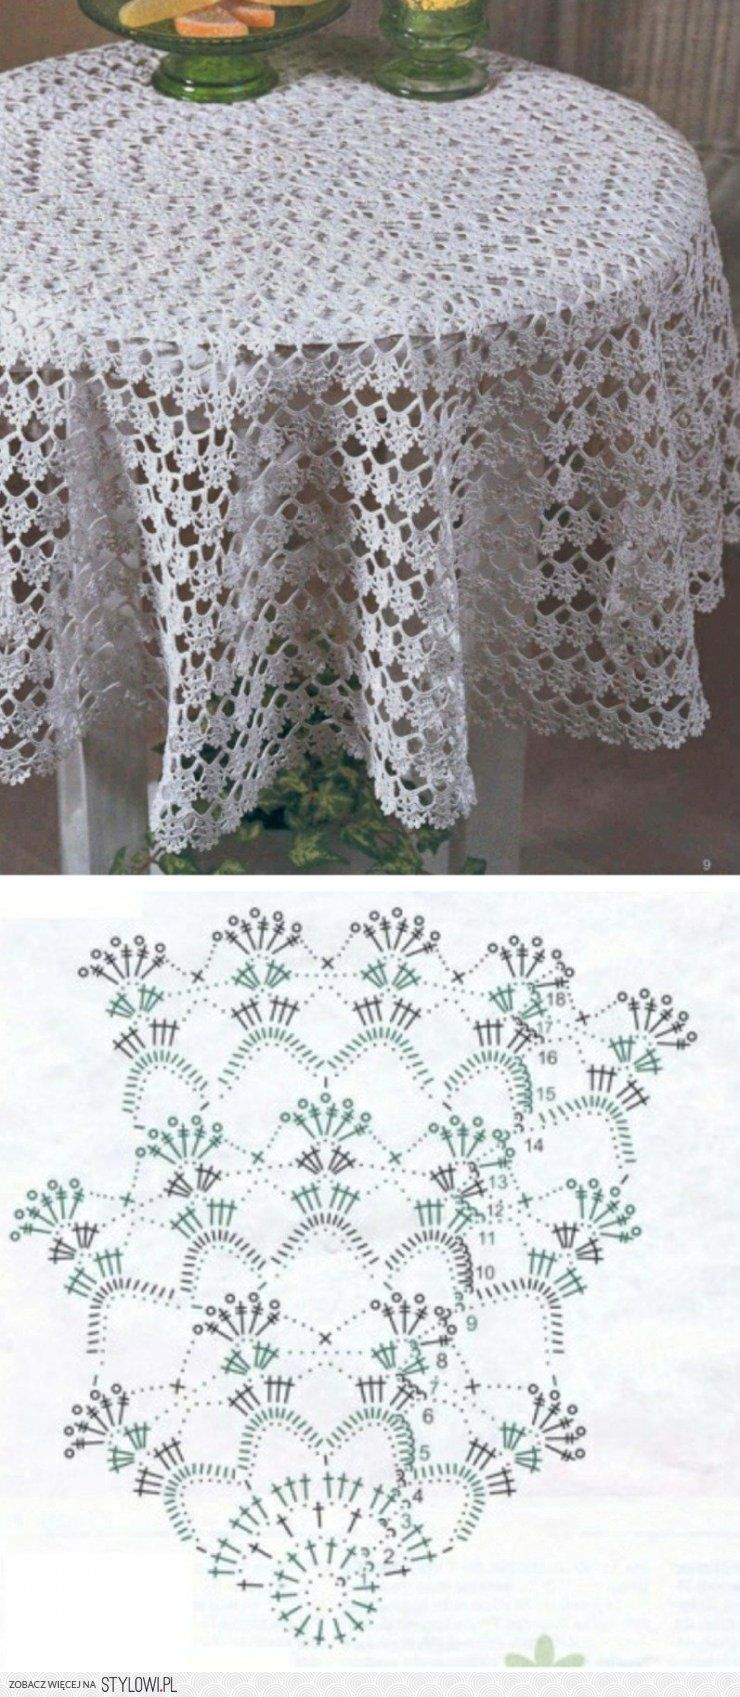 Manteles crochet | carpetas | Pinterest | Mantel, Ganchillo y Carpeta